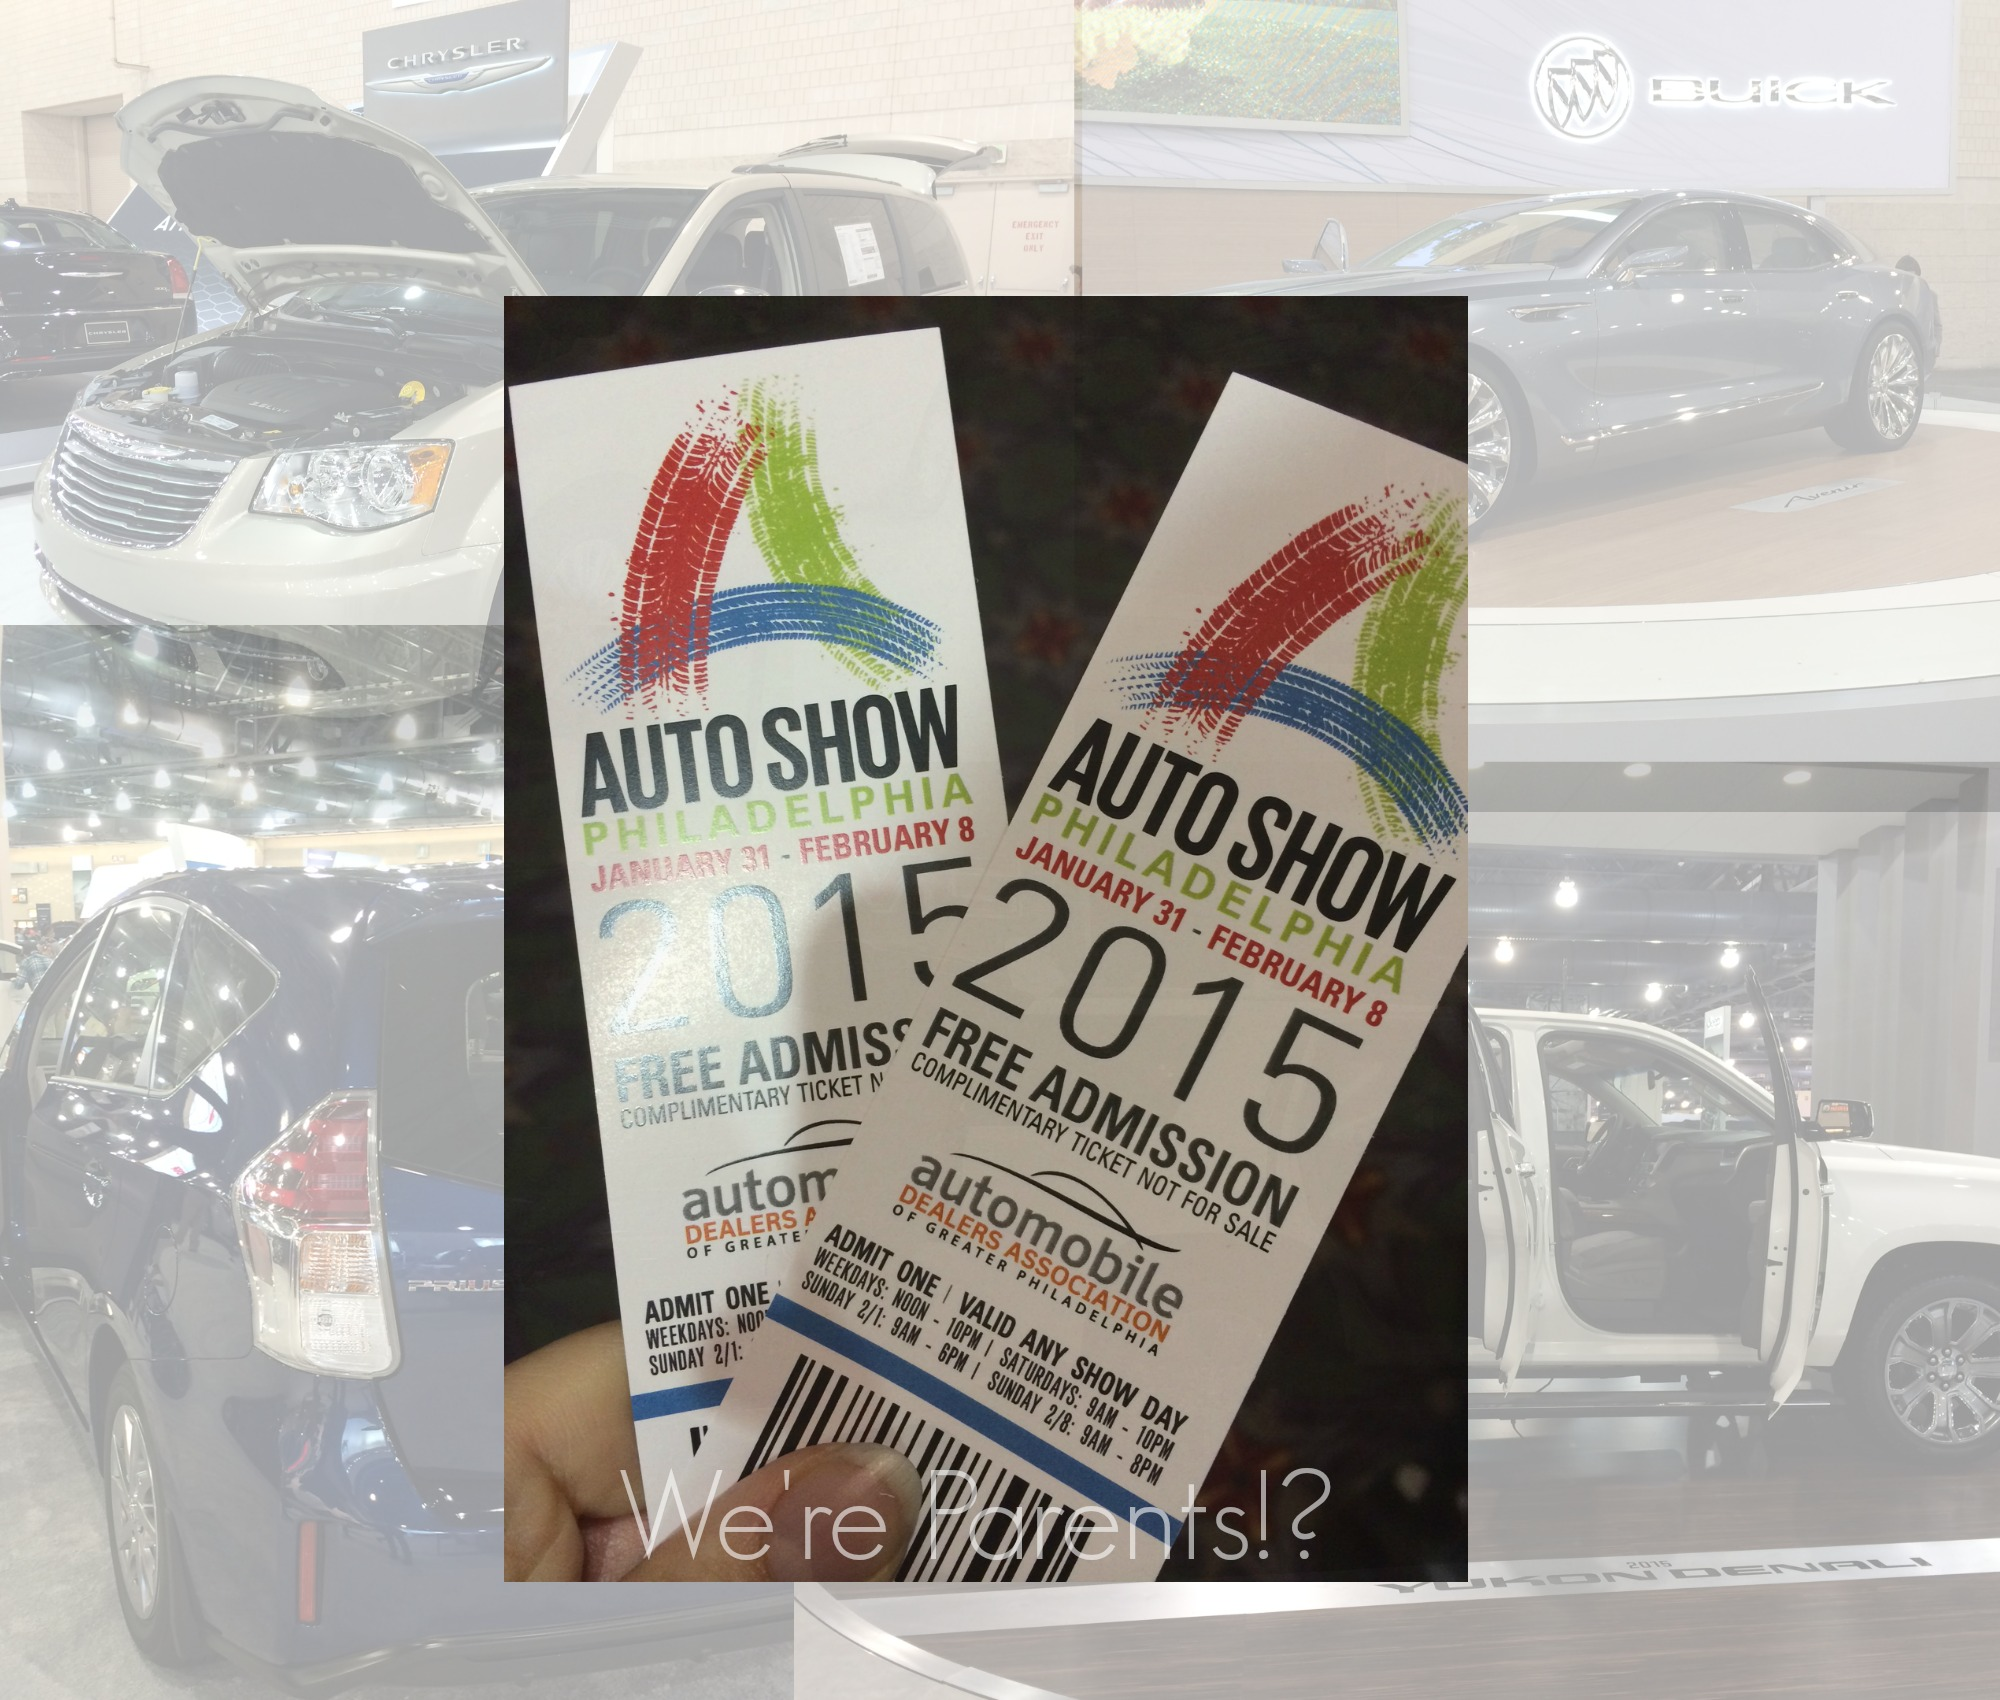 Philly Auto Show Were Parents - How much are the tickets for the car show